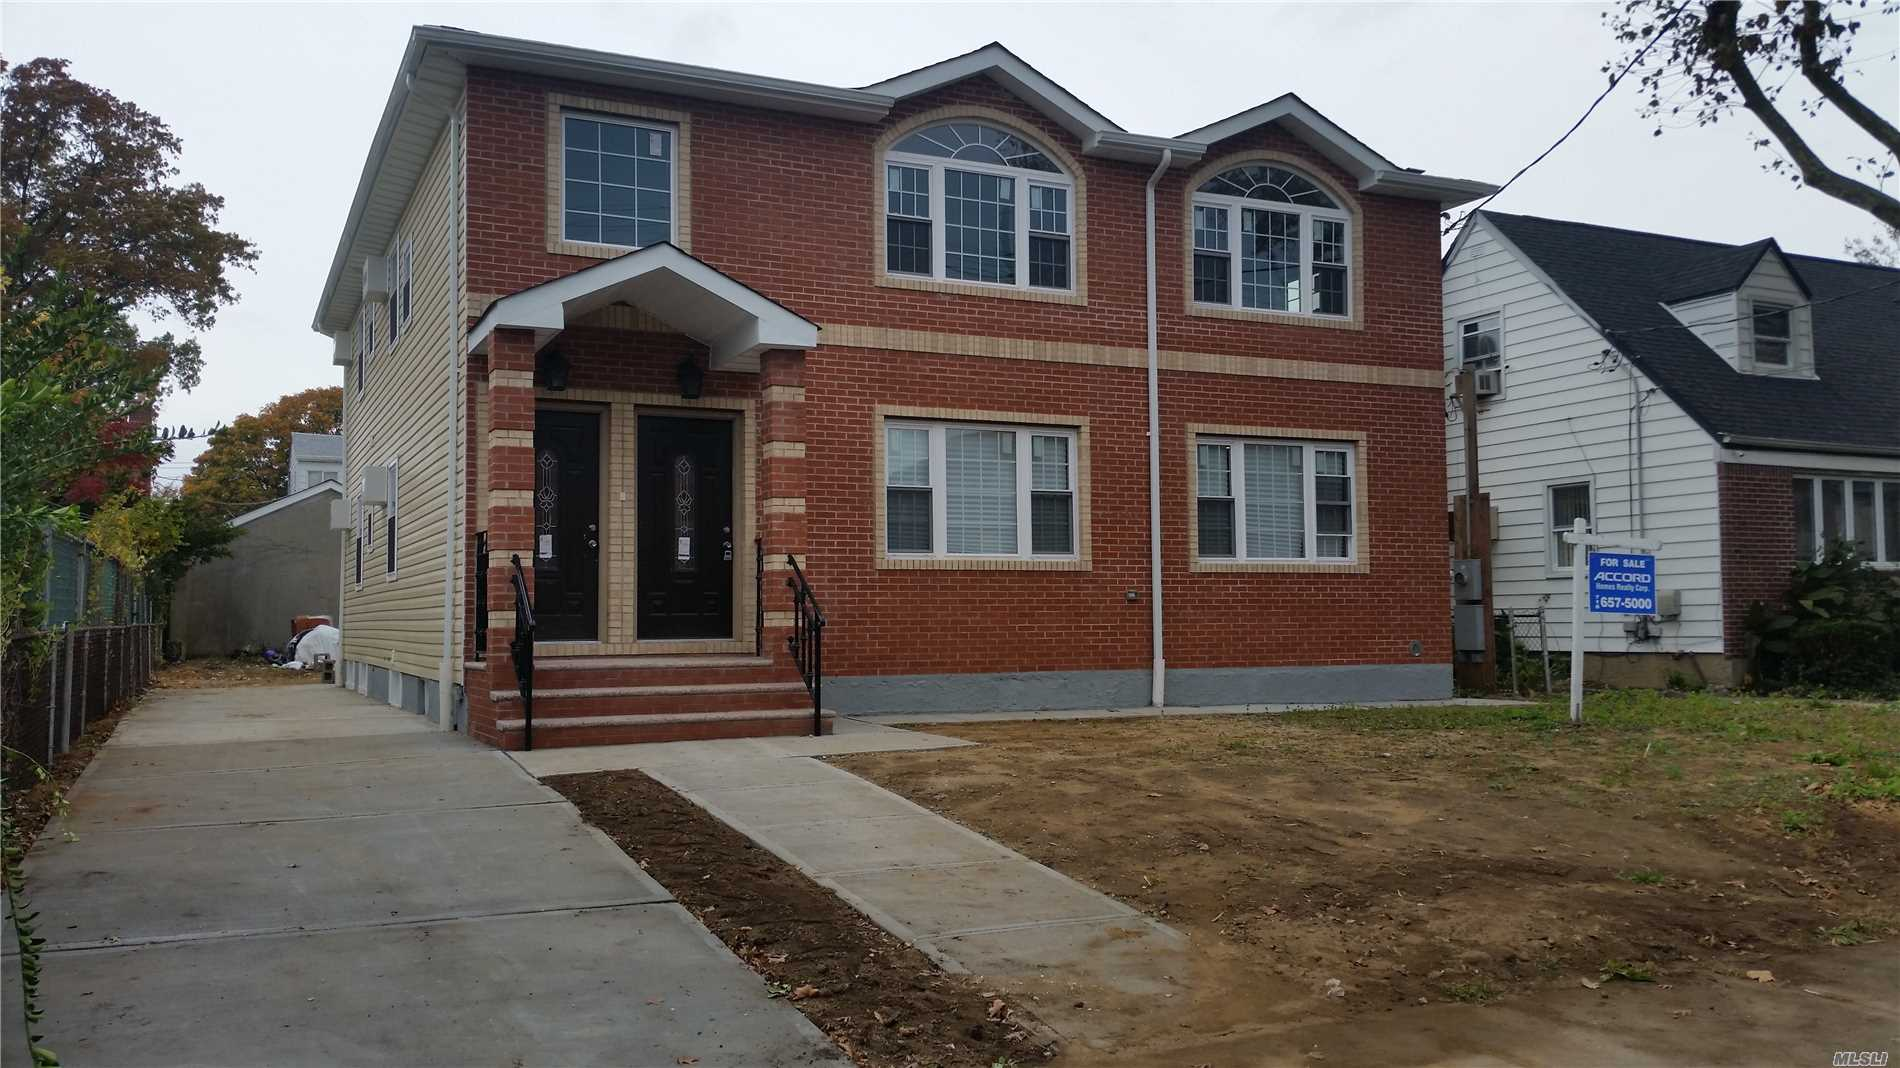 New Construction Very Large 8 Bedroom 5 Bath Home Open Kitchen To A 32'X16' Living Dinning, Large Master Bed Room, Walk In Closet And Master Bath. Close To 3000 Sqf Of Living Space Plus Full Finished Basement. Located In The Heart Of Rosedale Walk To Busses And Lirr.